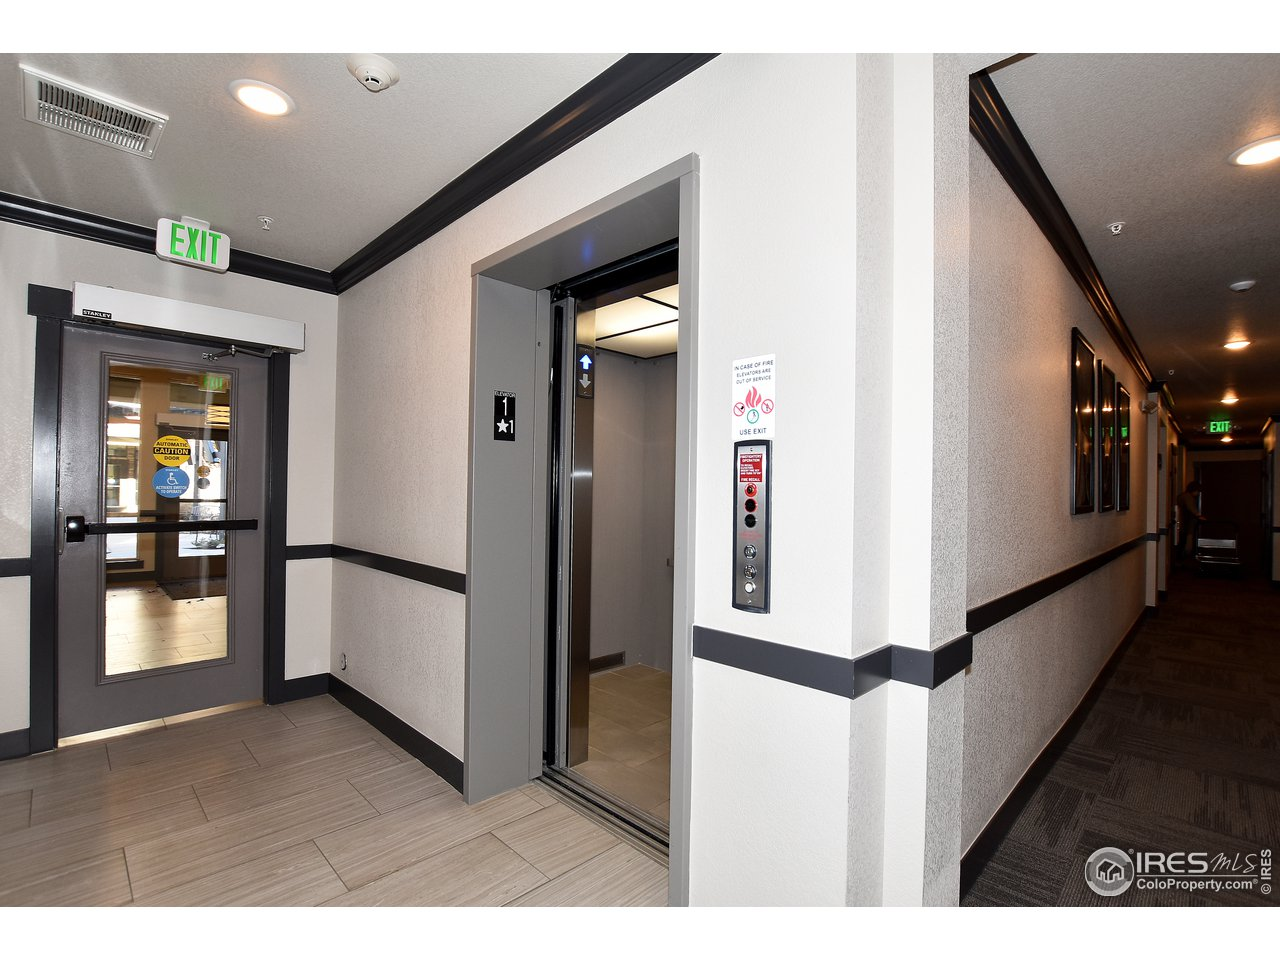 Head on up to the unit in the elevator! There are also 2 stairwells on backside of building